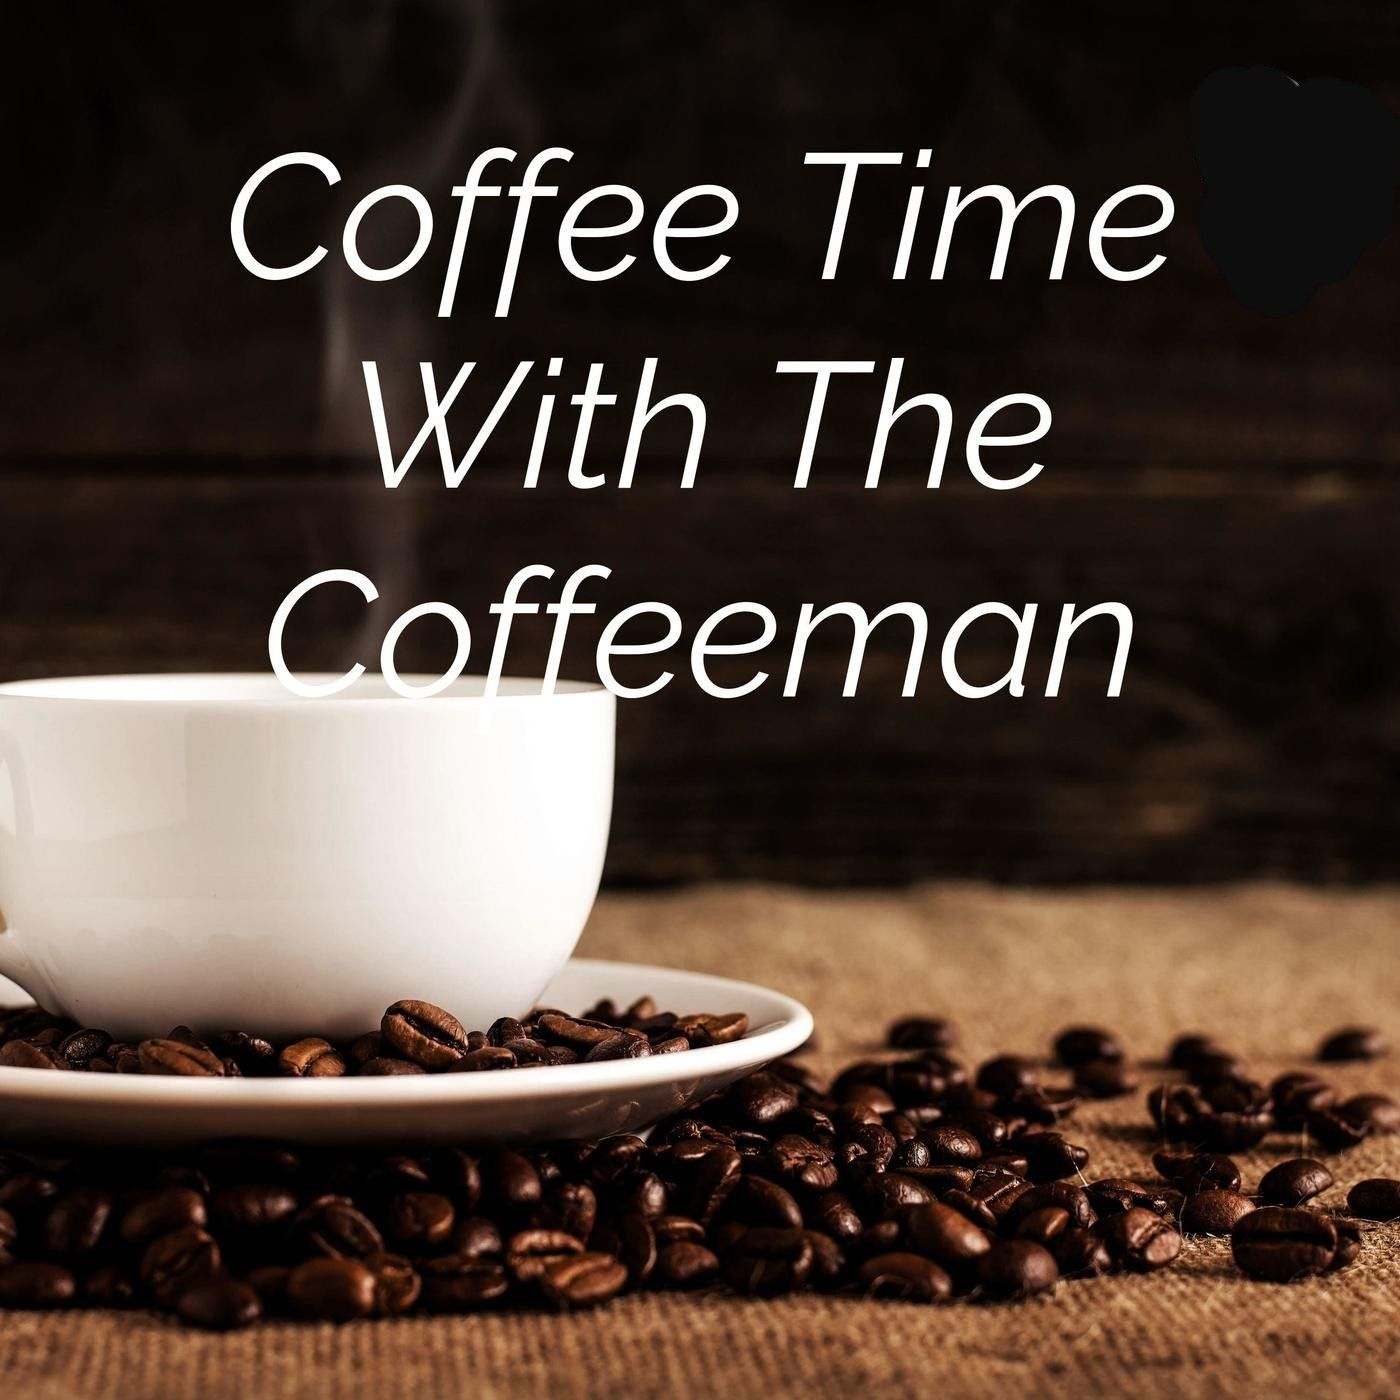 Episode 36 - Coffee Time With The Coffeeman